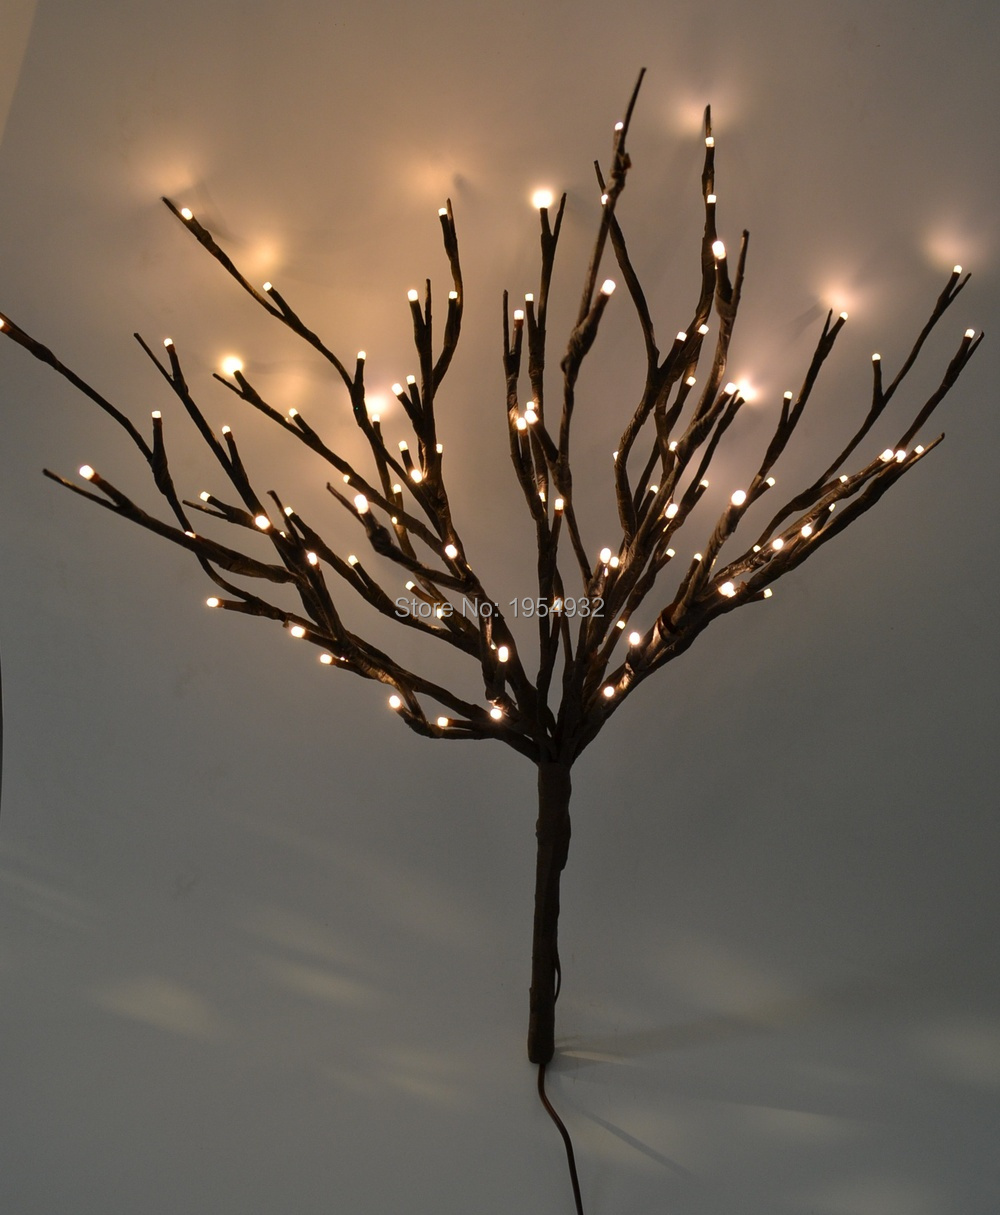 led electric branch light 20 100led christmas branch light wedding table decoration twig light in 3v voltage with 3v adaptor in artificial dried flowers